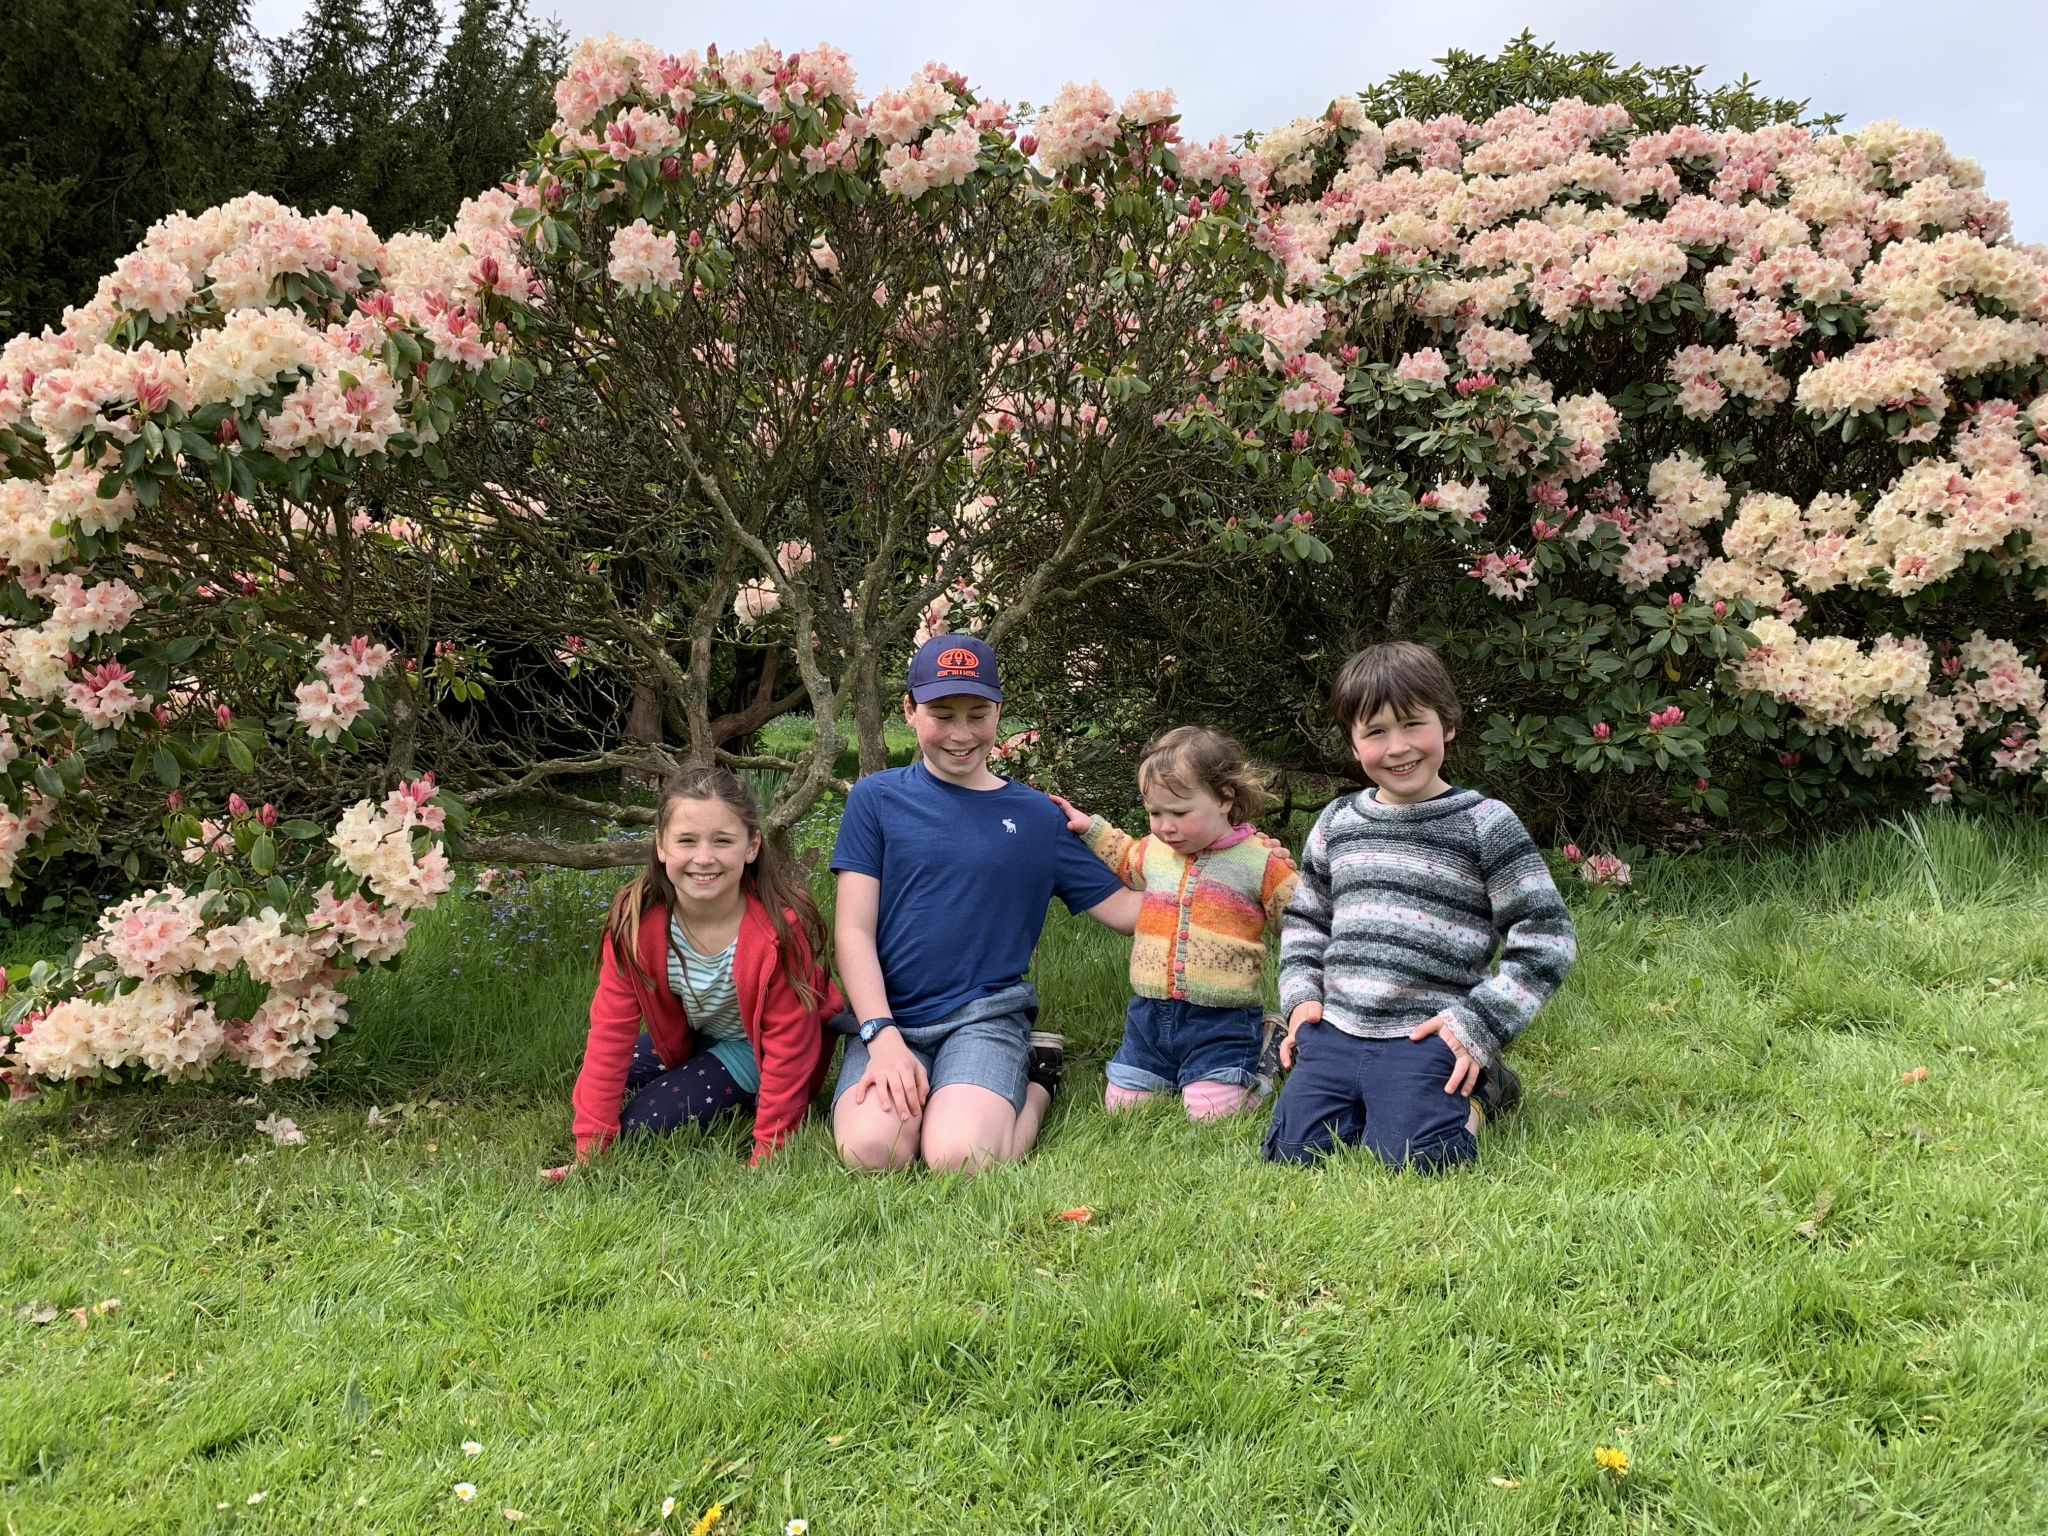 Four children having a photo by some pink flowers